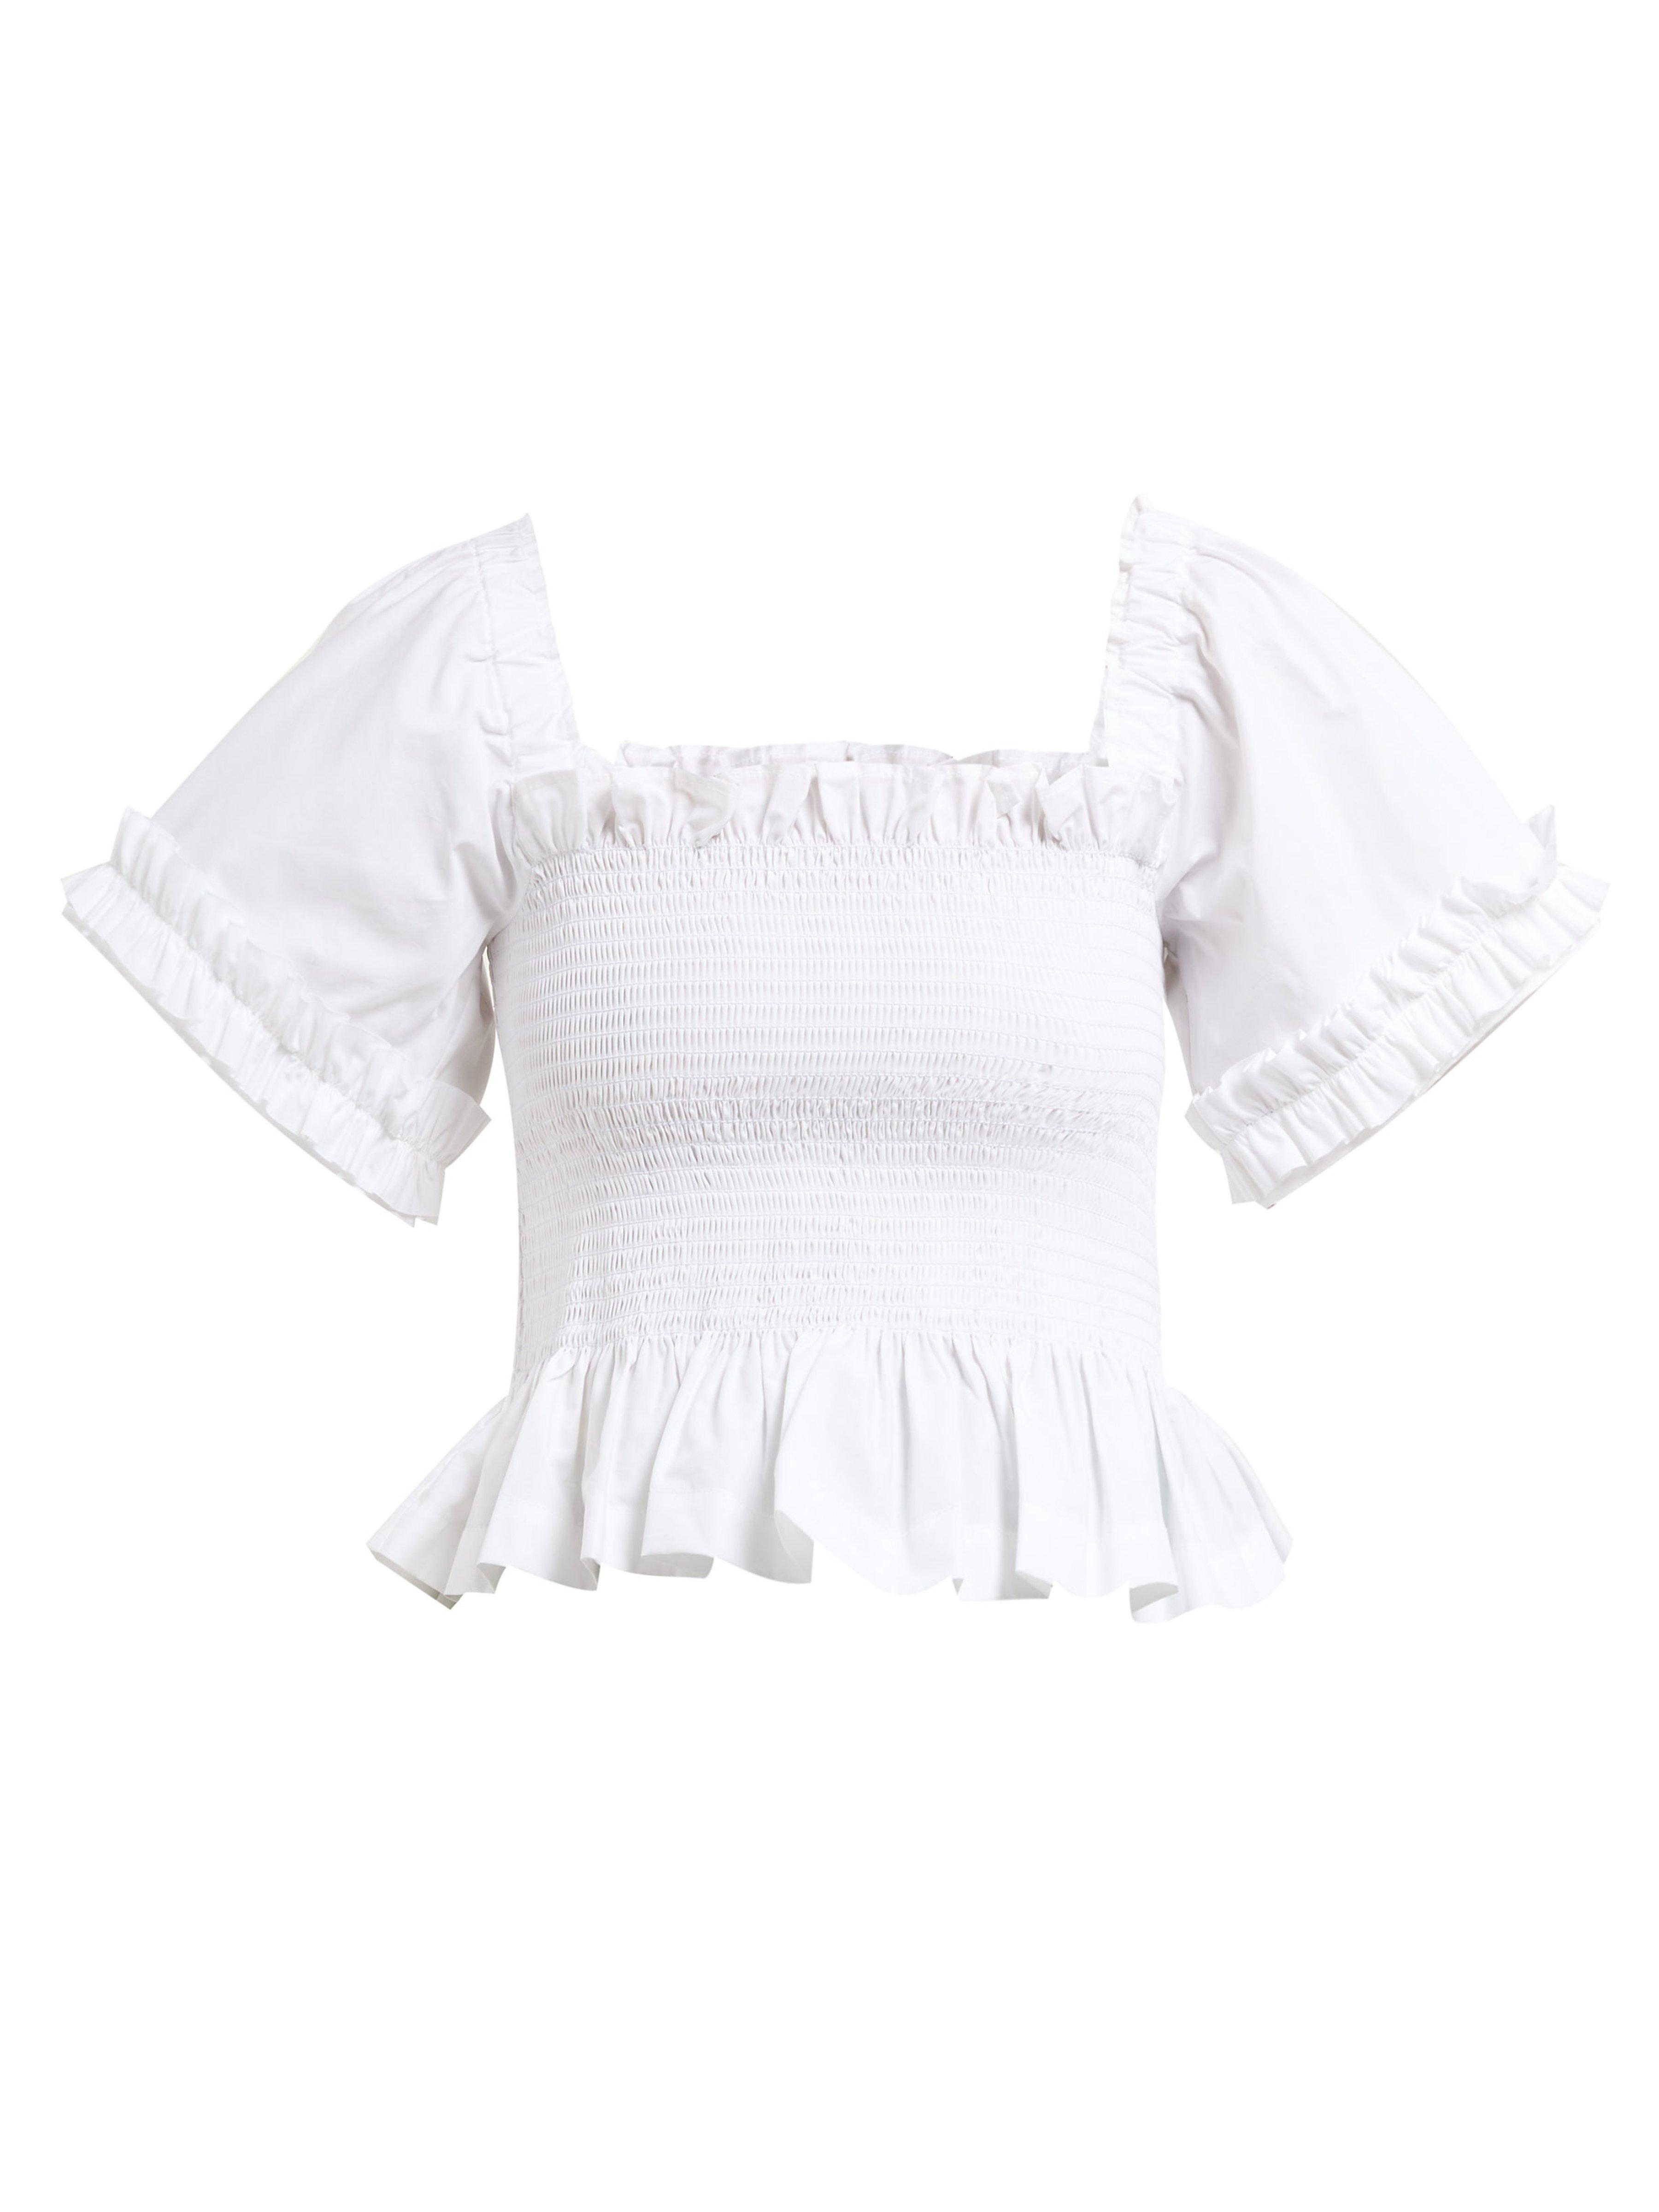 272db2dc30138 Molly Goddard Ruffled Blouse in White - Save 35% - Lyst